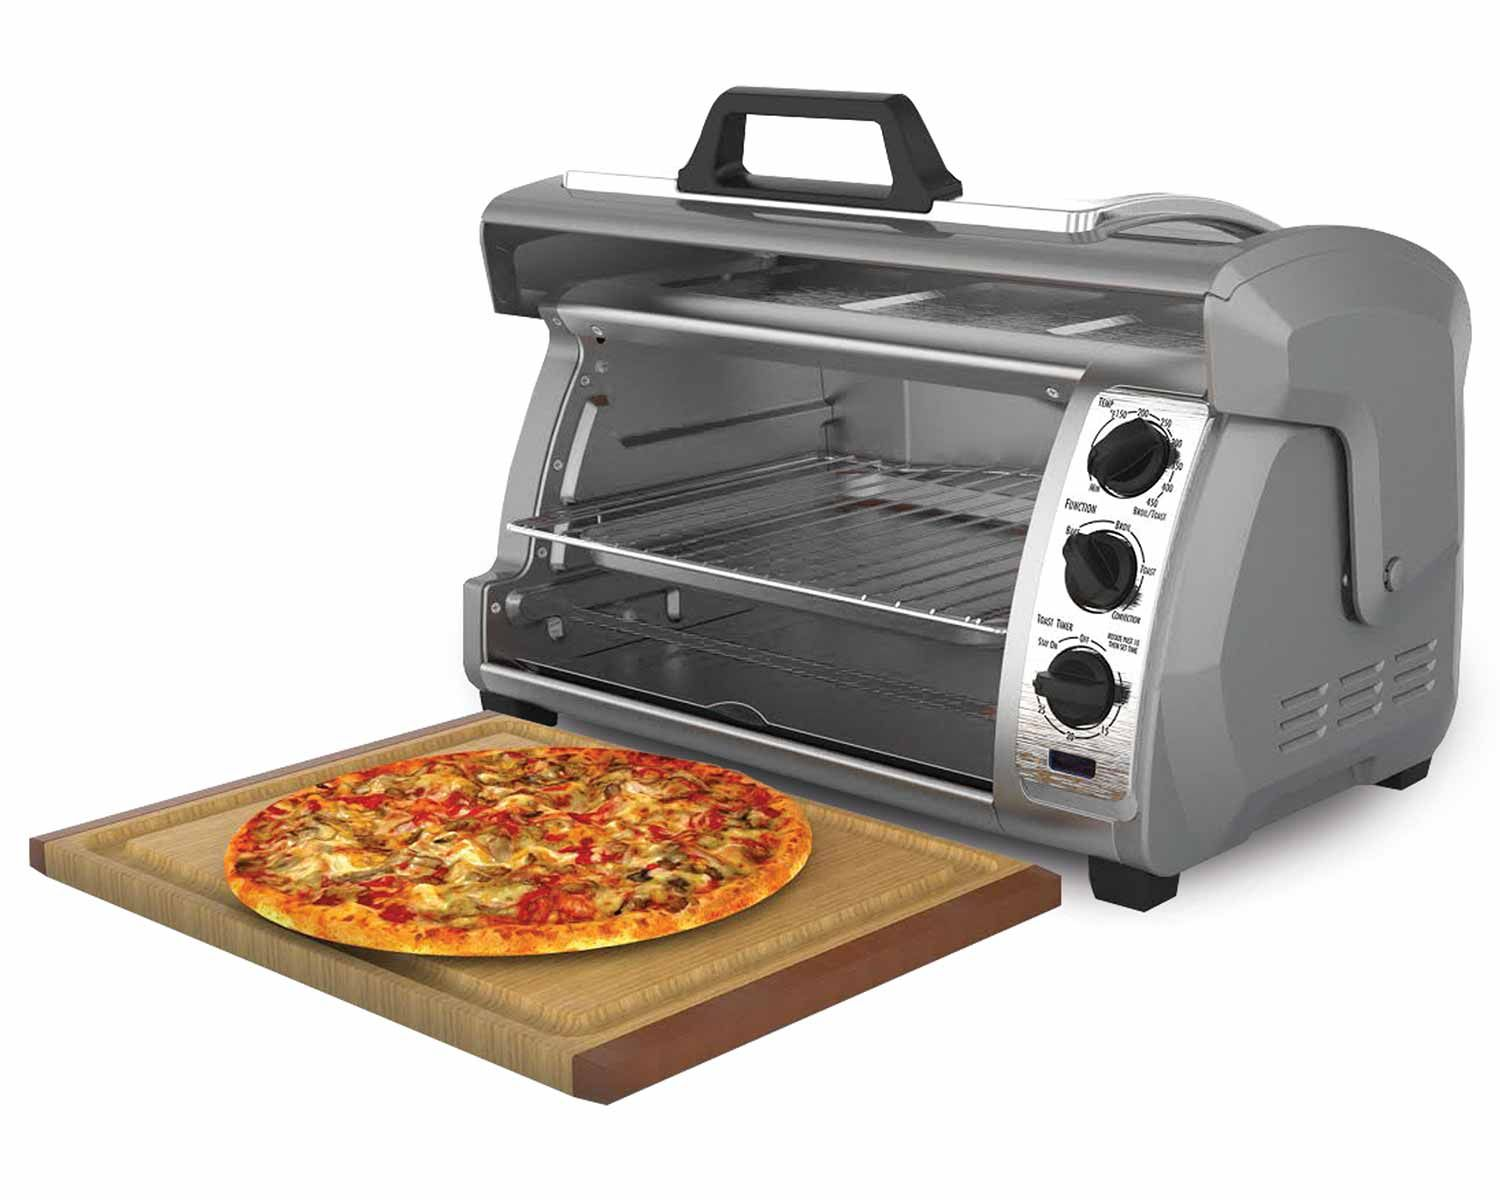 countertop pza cart ppc ovens oveneer prep countertops with oven pizza alf products alfresco